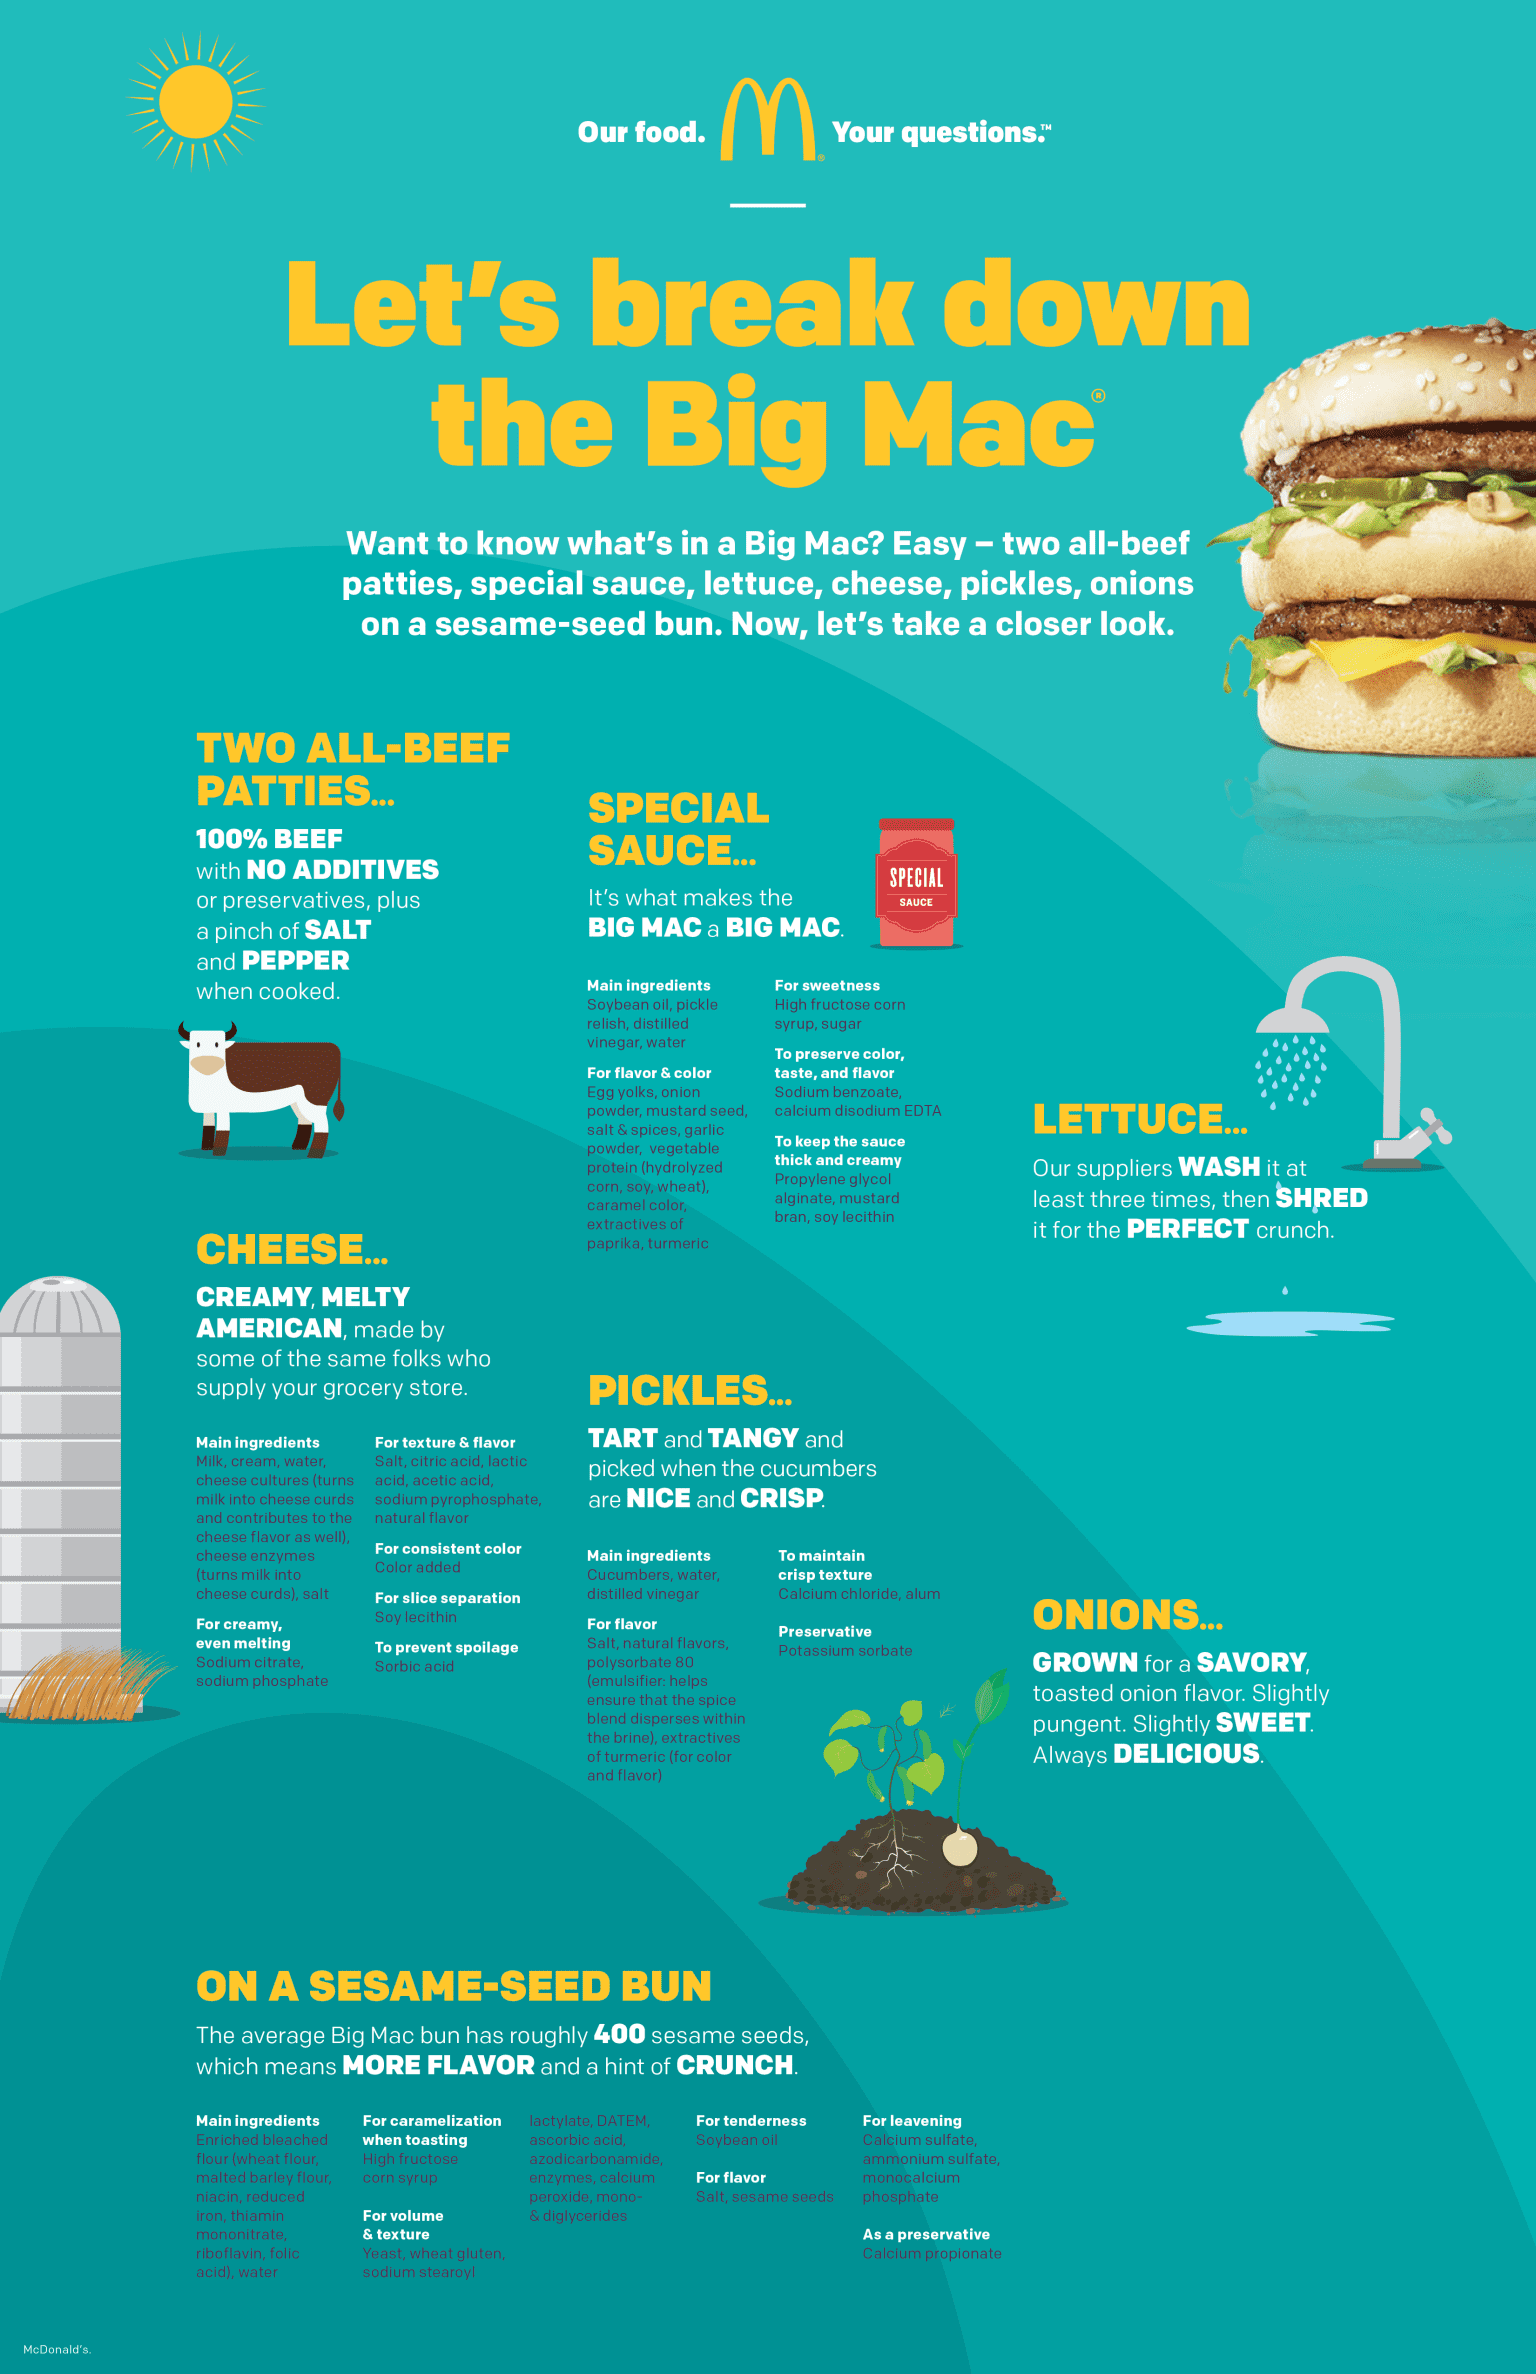 McDonald's – Our Food. Your Questions.